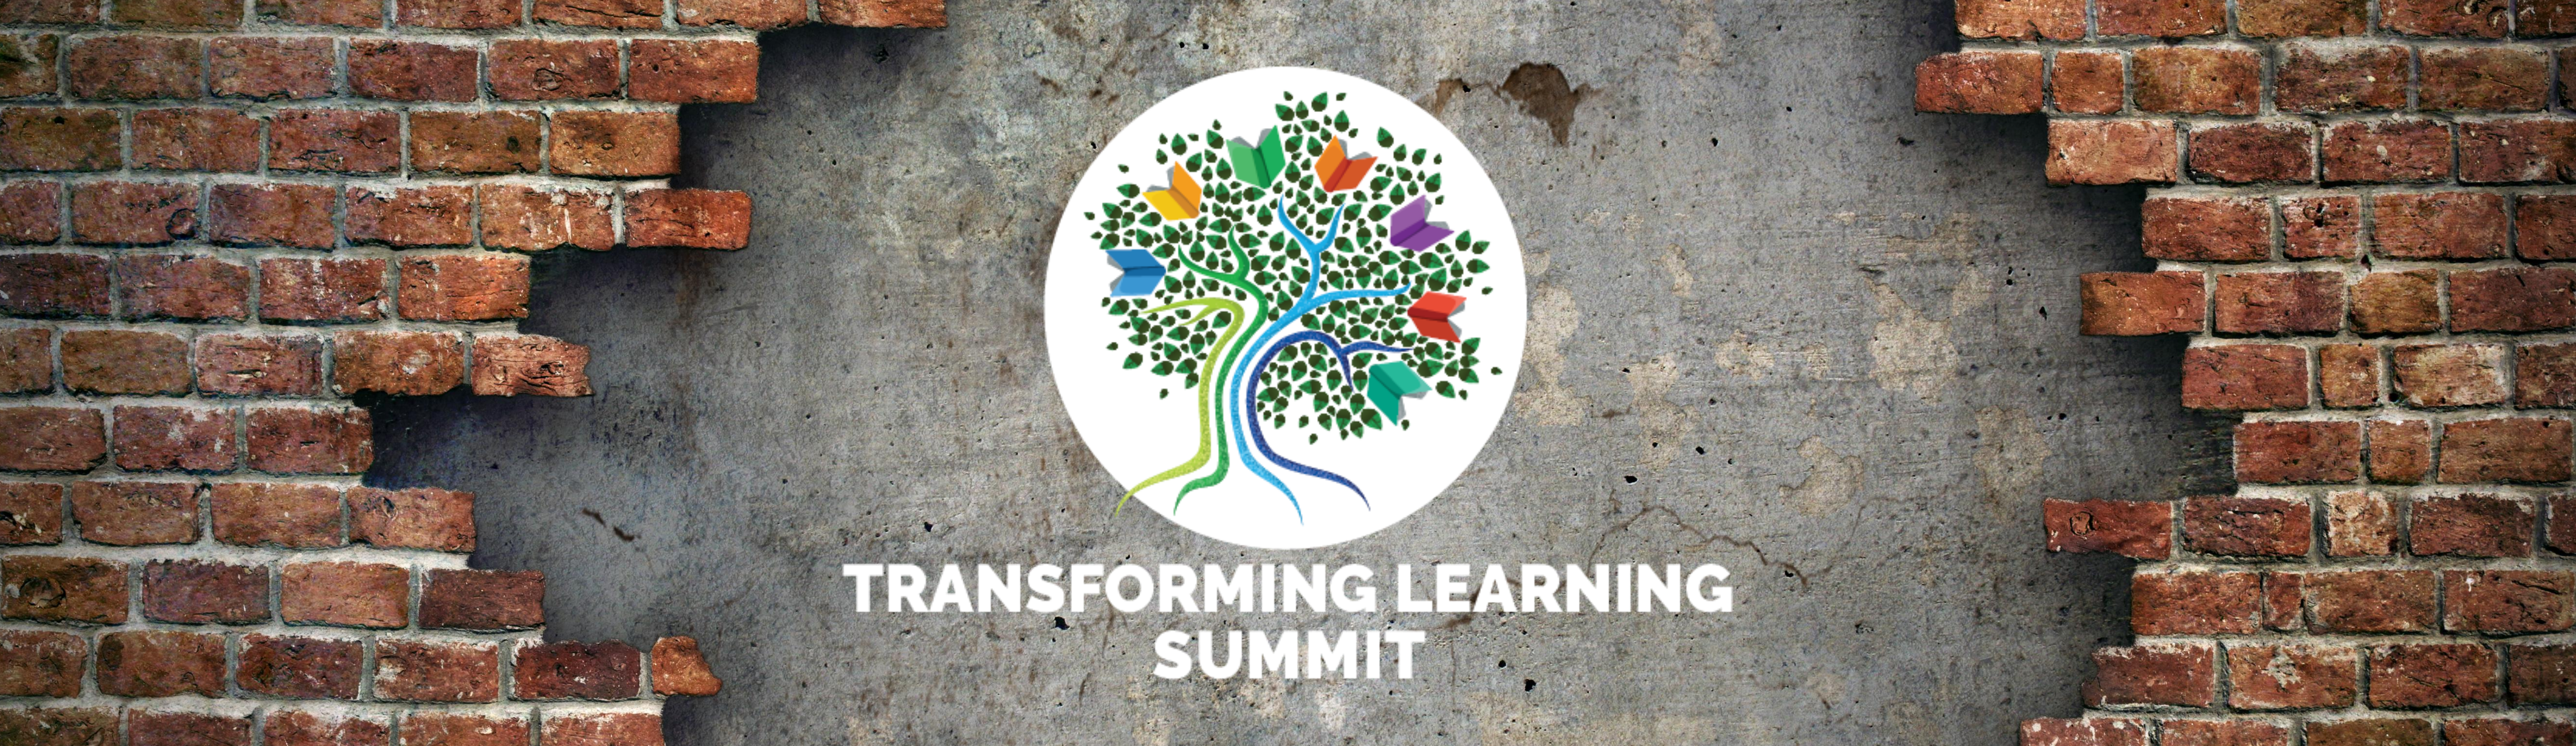 2021 Transforming Learning Summit Gts Educational Events